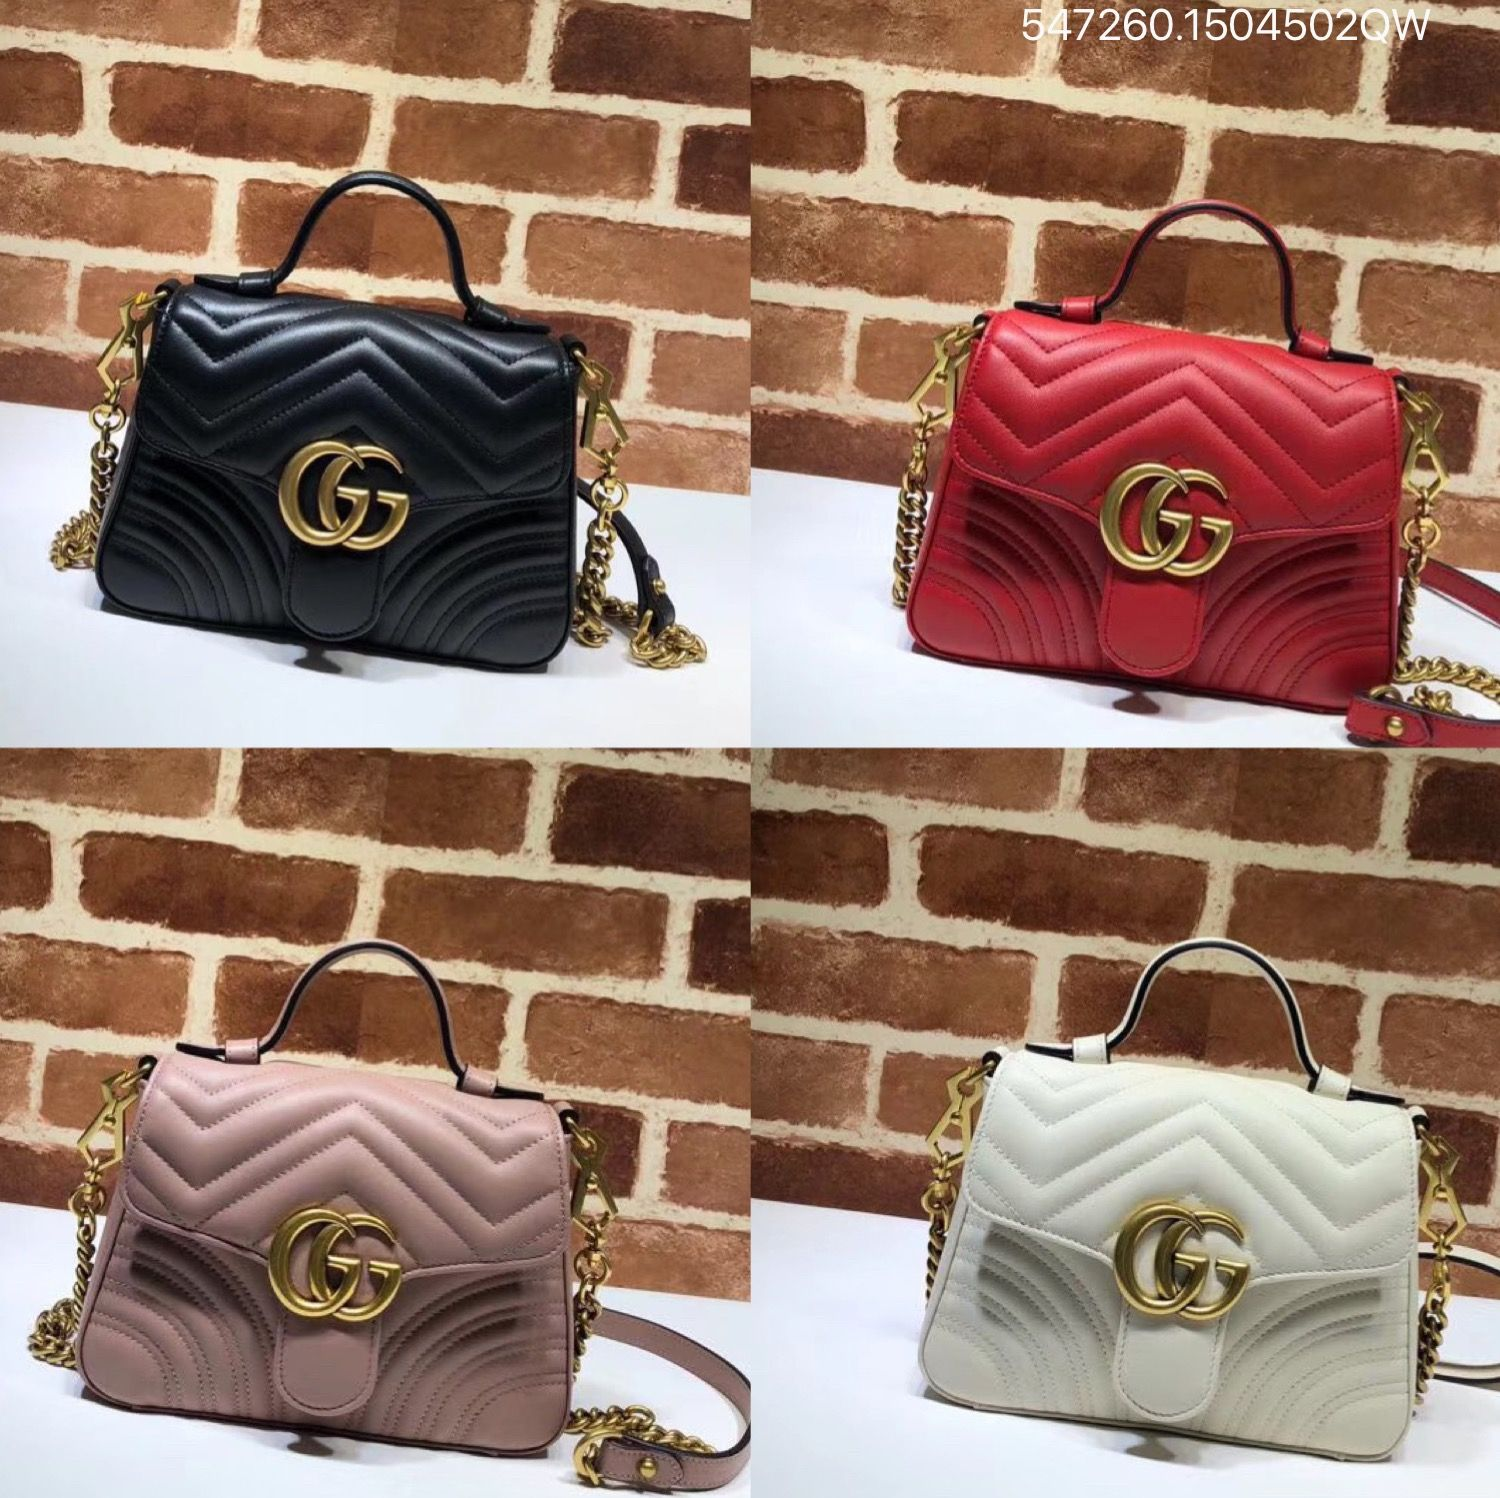 6d868427db8 Gucci GG marmont mini top handle bag with chain shoulder 547260 ...